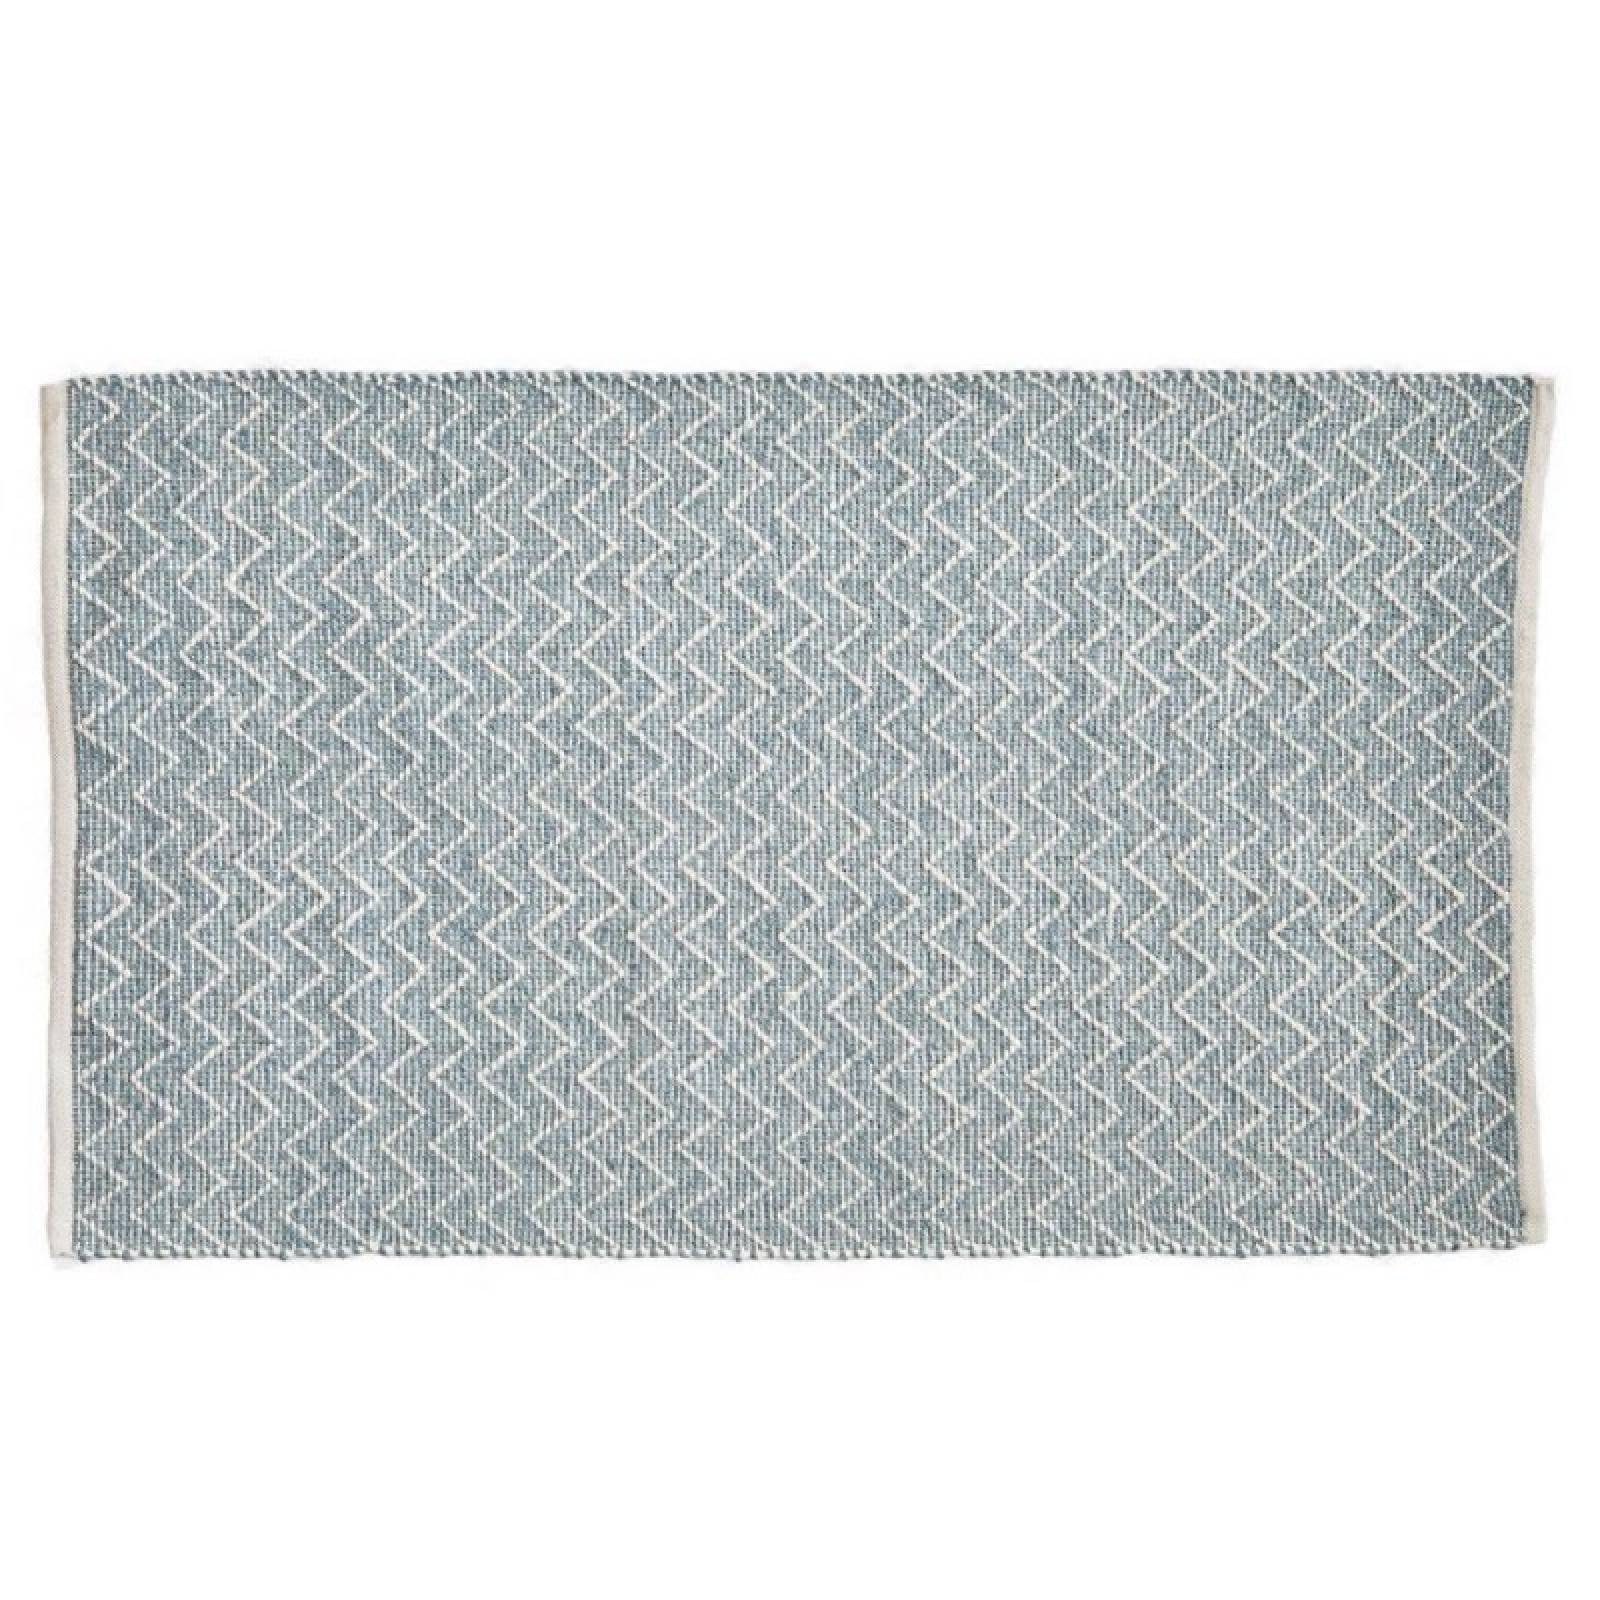 Chenille Teal 110 x 60cm Recycled Bottle Rug thumbnails